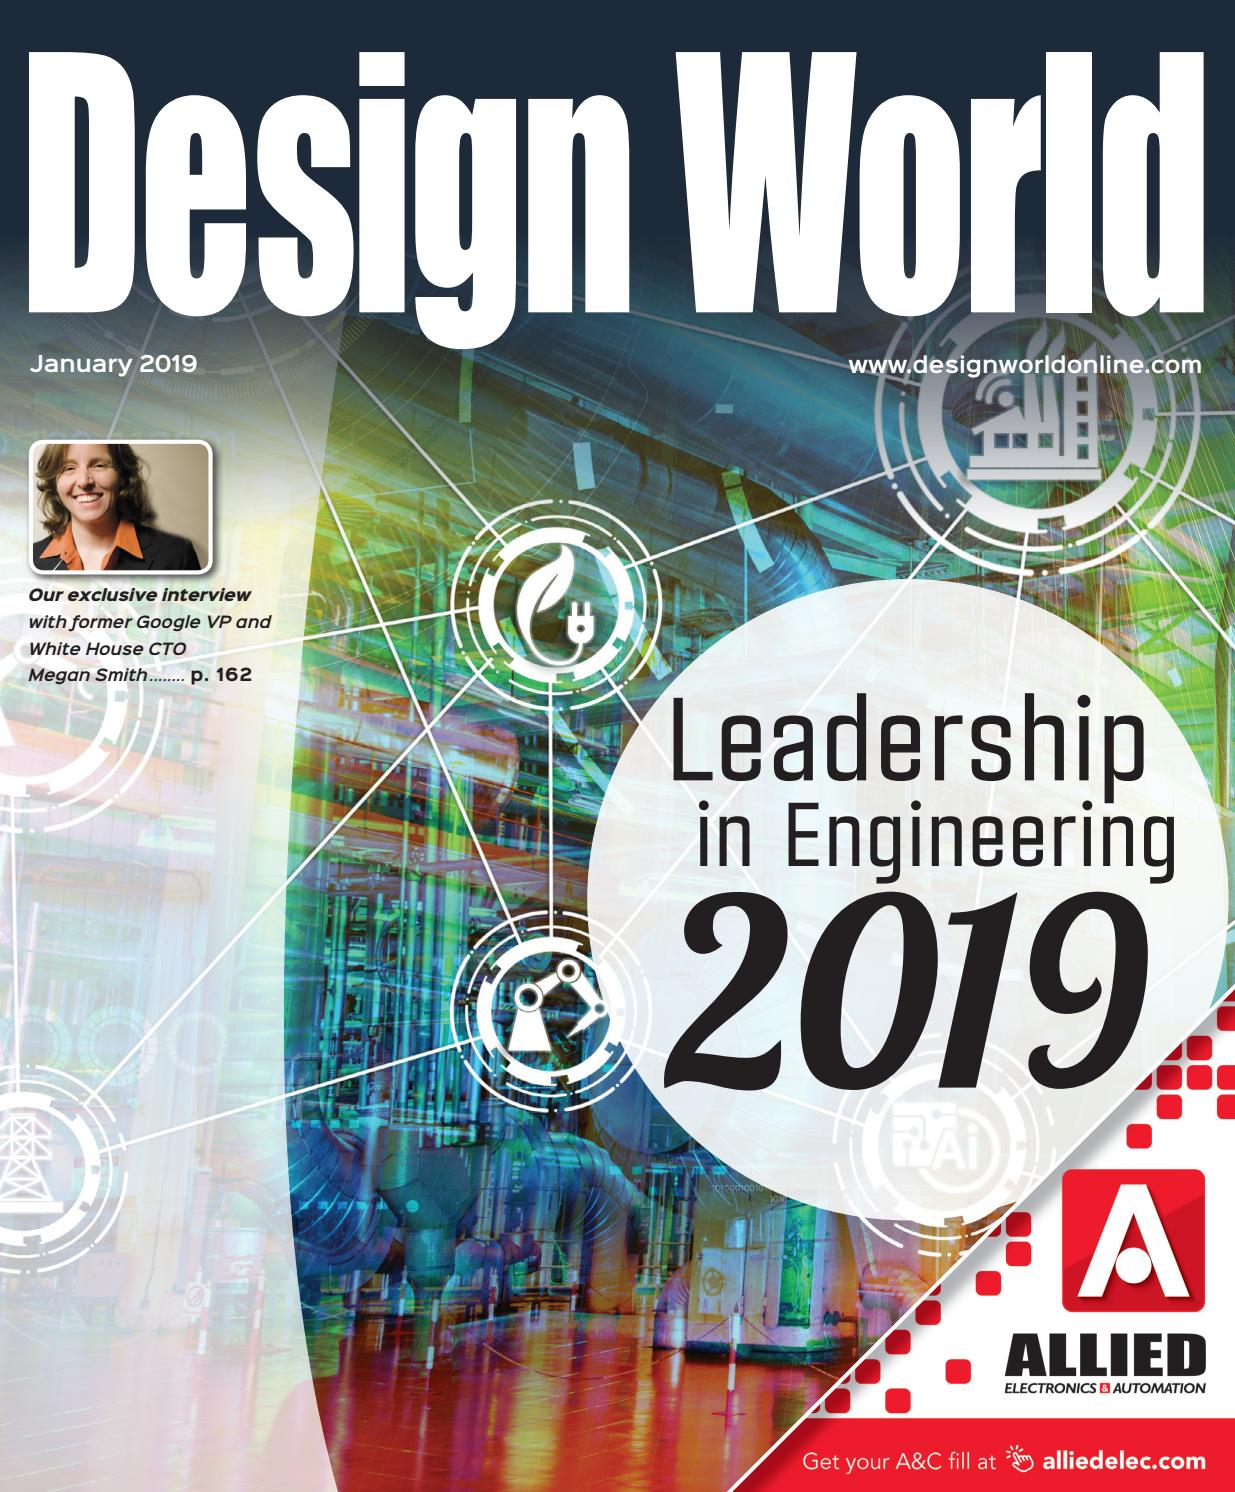 DESIGN WORLD JANUARY 2019 - MAIN ISSUE by WTWH Media LLC - issuu d834d2ca669b4